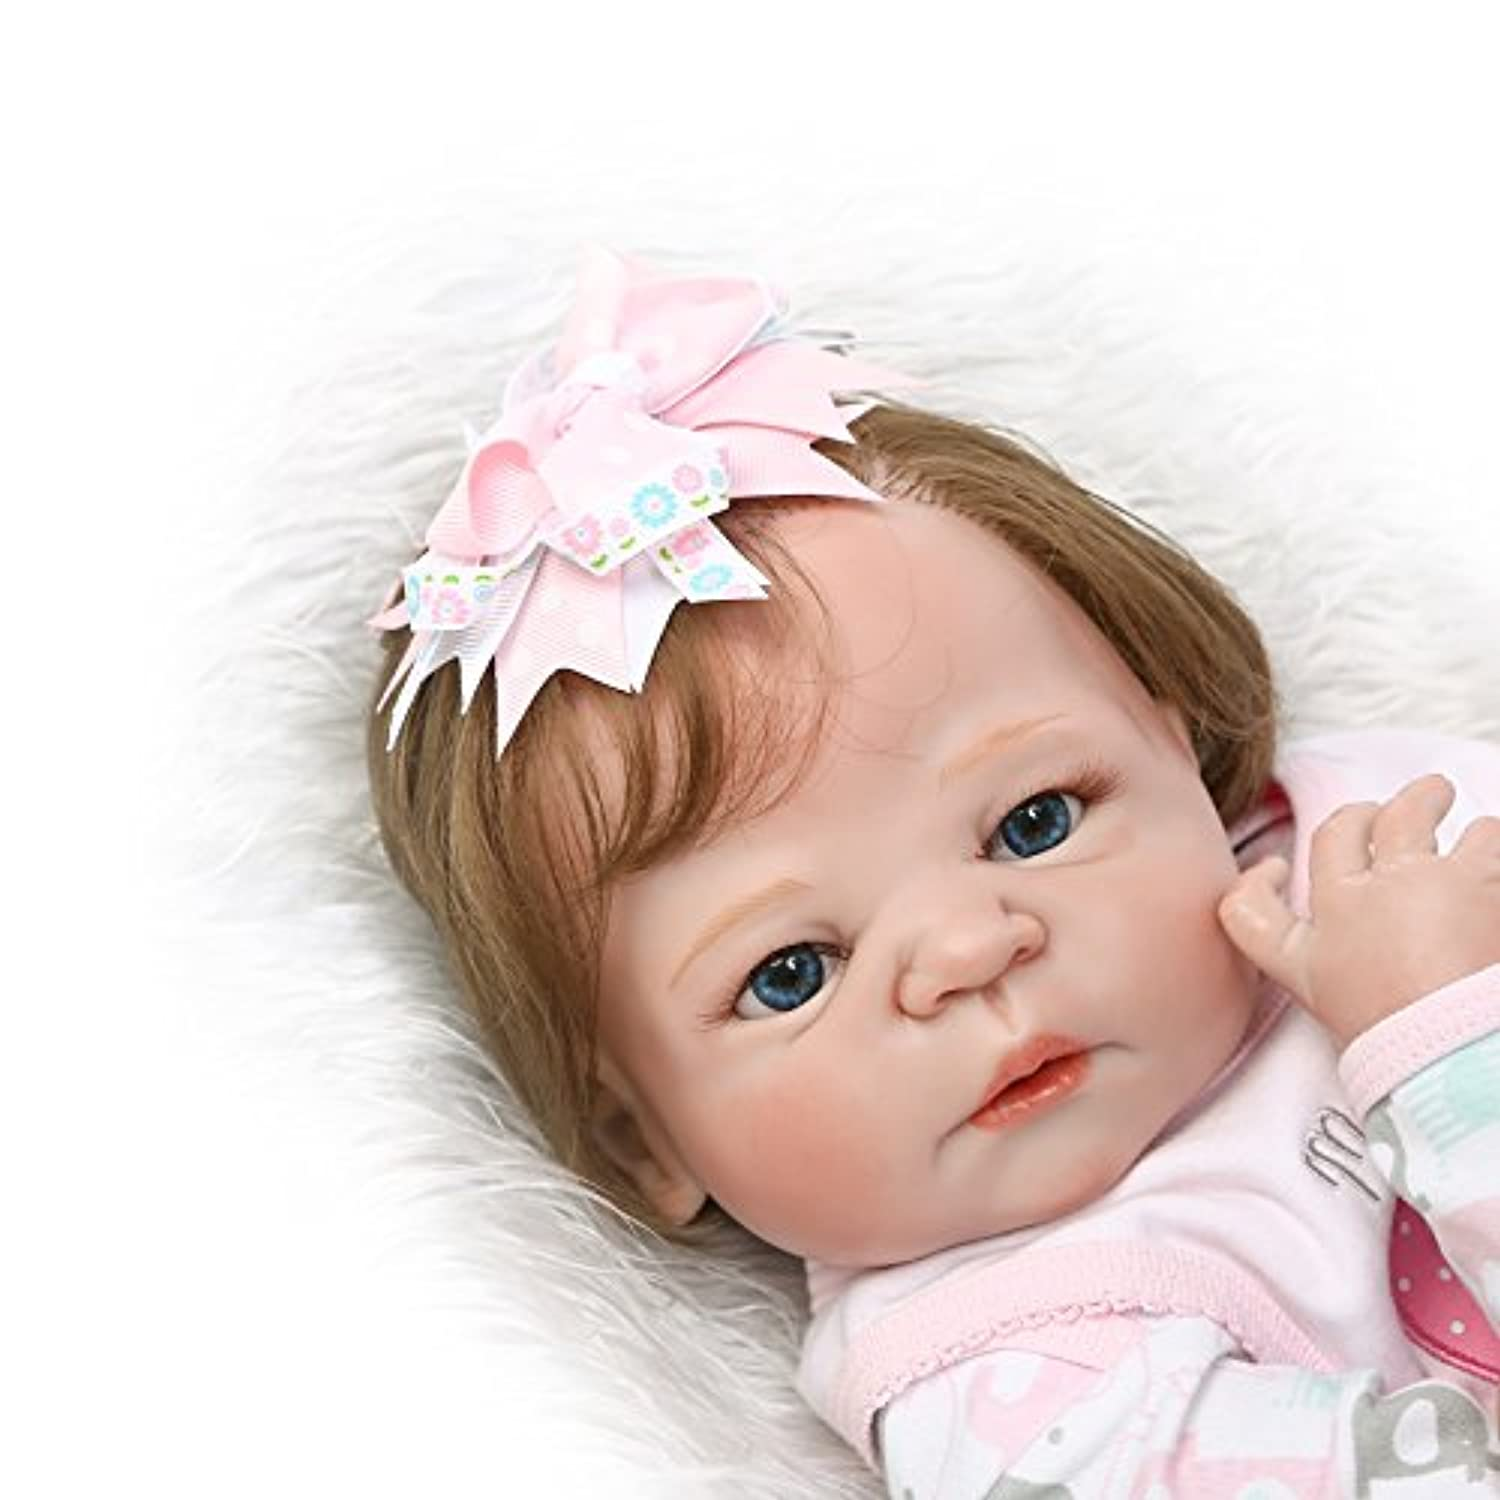 SanyDoll Rebornベビー人形ソフトSilicone 22インチ55 cm磁気Lovely Lifelike Cute Lovely Baby b0763llvkv